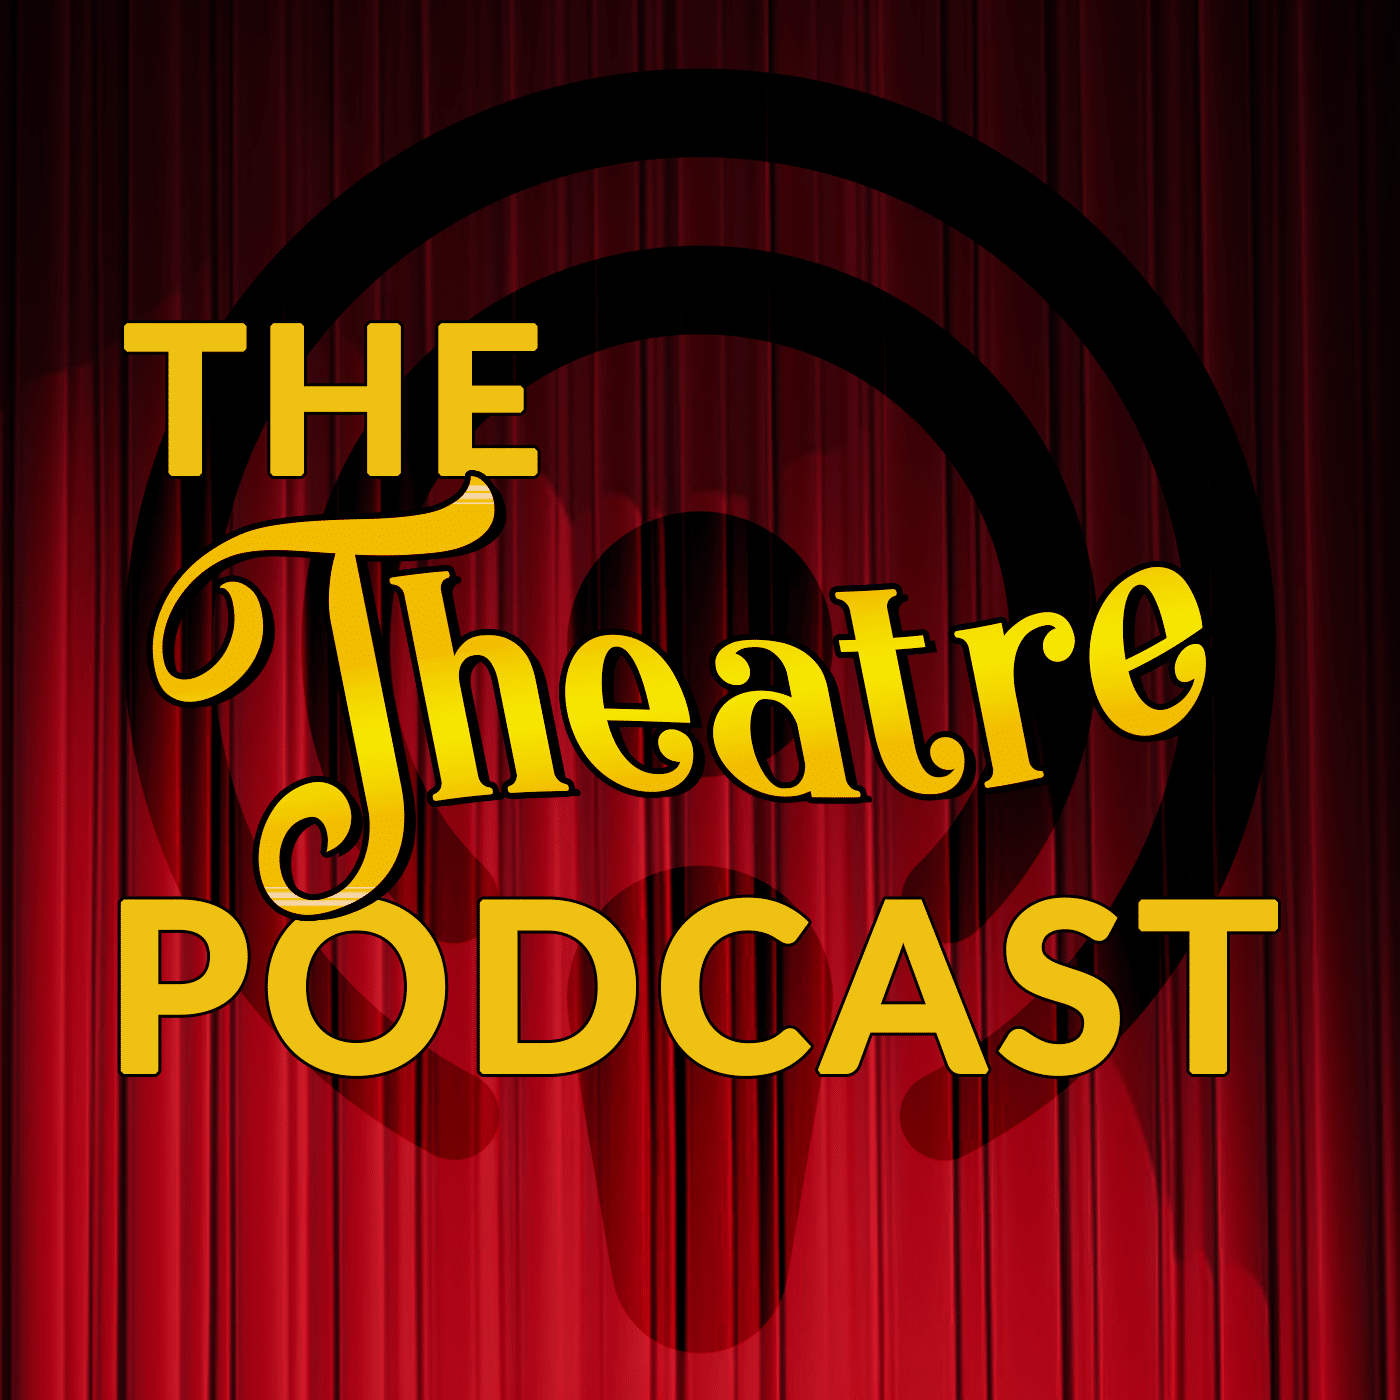 The Theatre Podcast hosted by Alan Seales